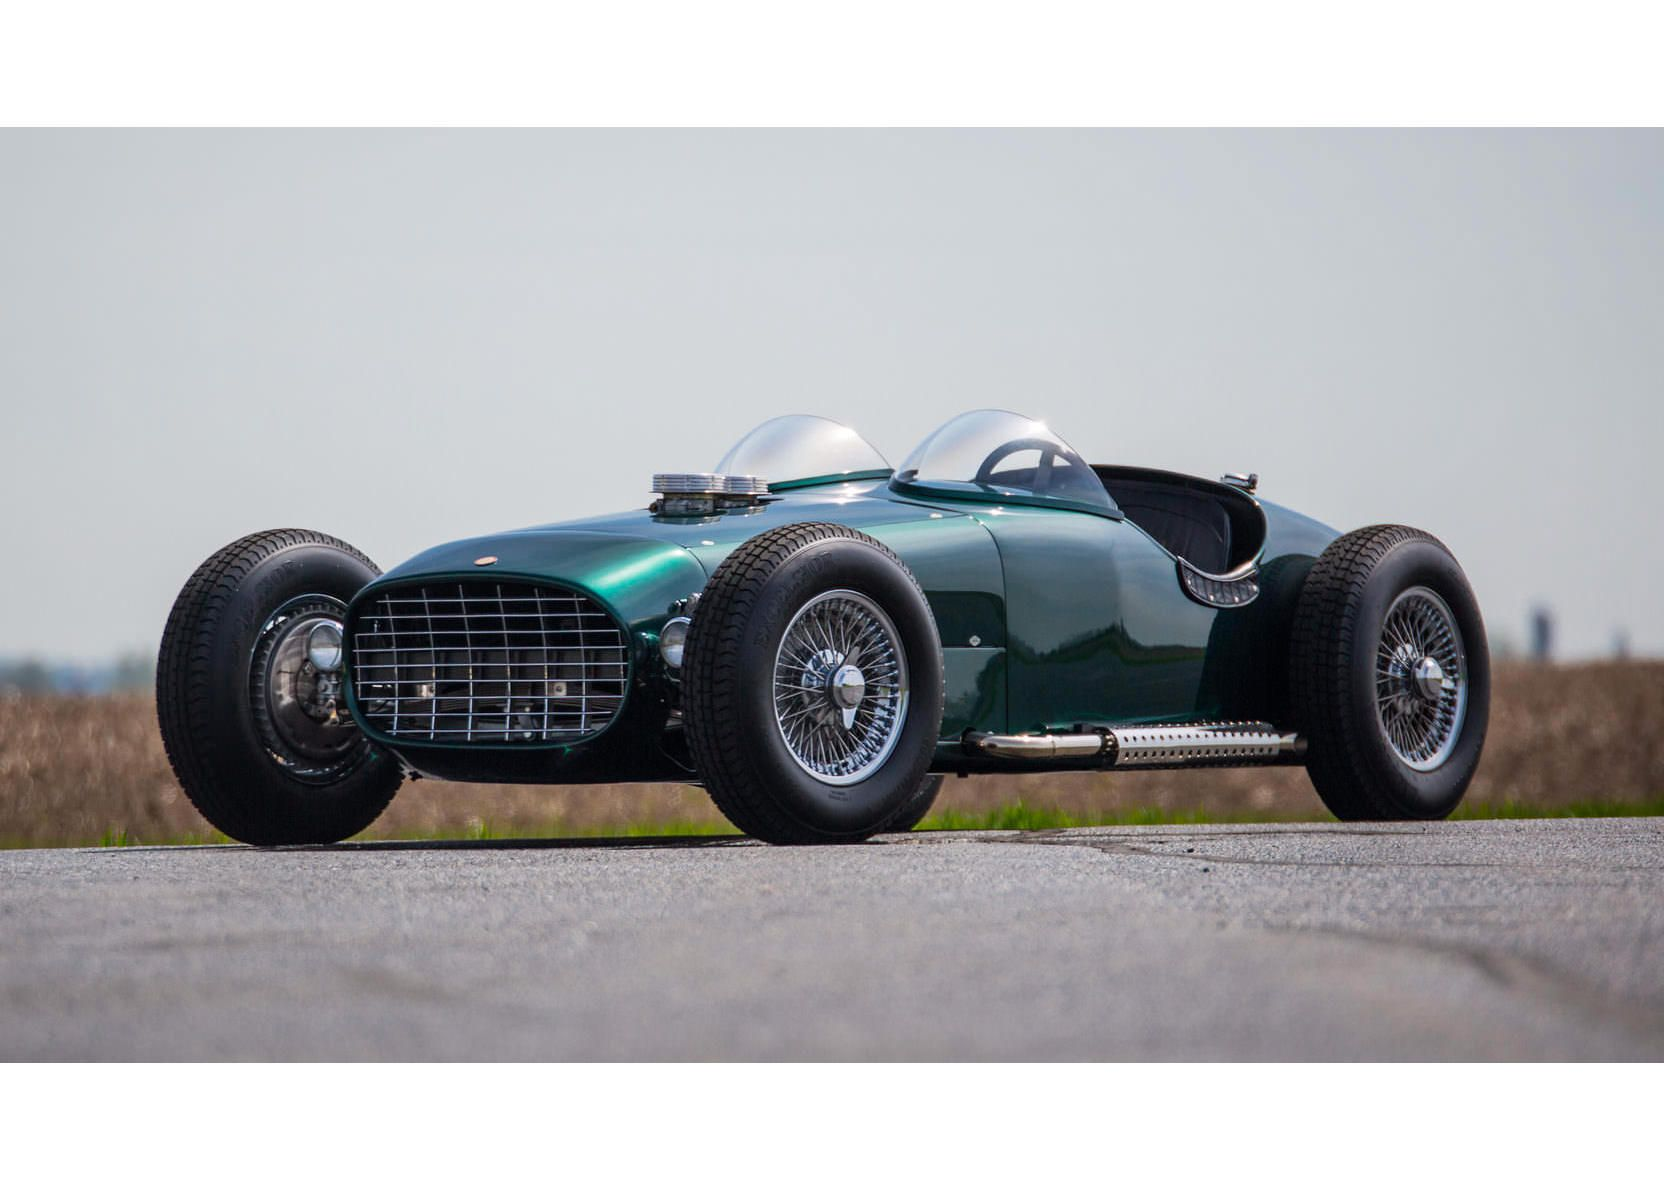 1959 Troy Roadster | Troy, Roadster car and Car stuff